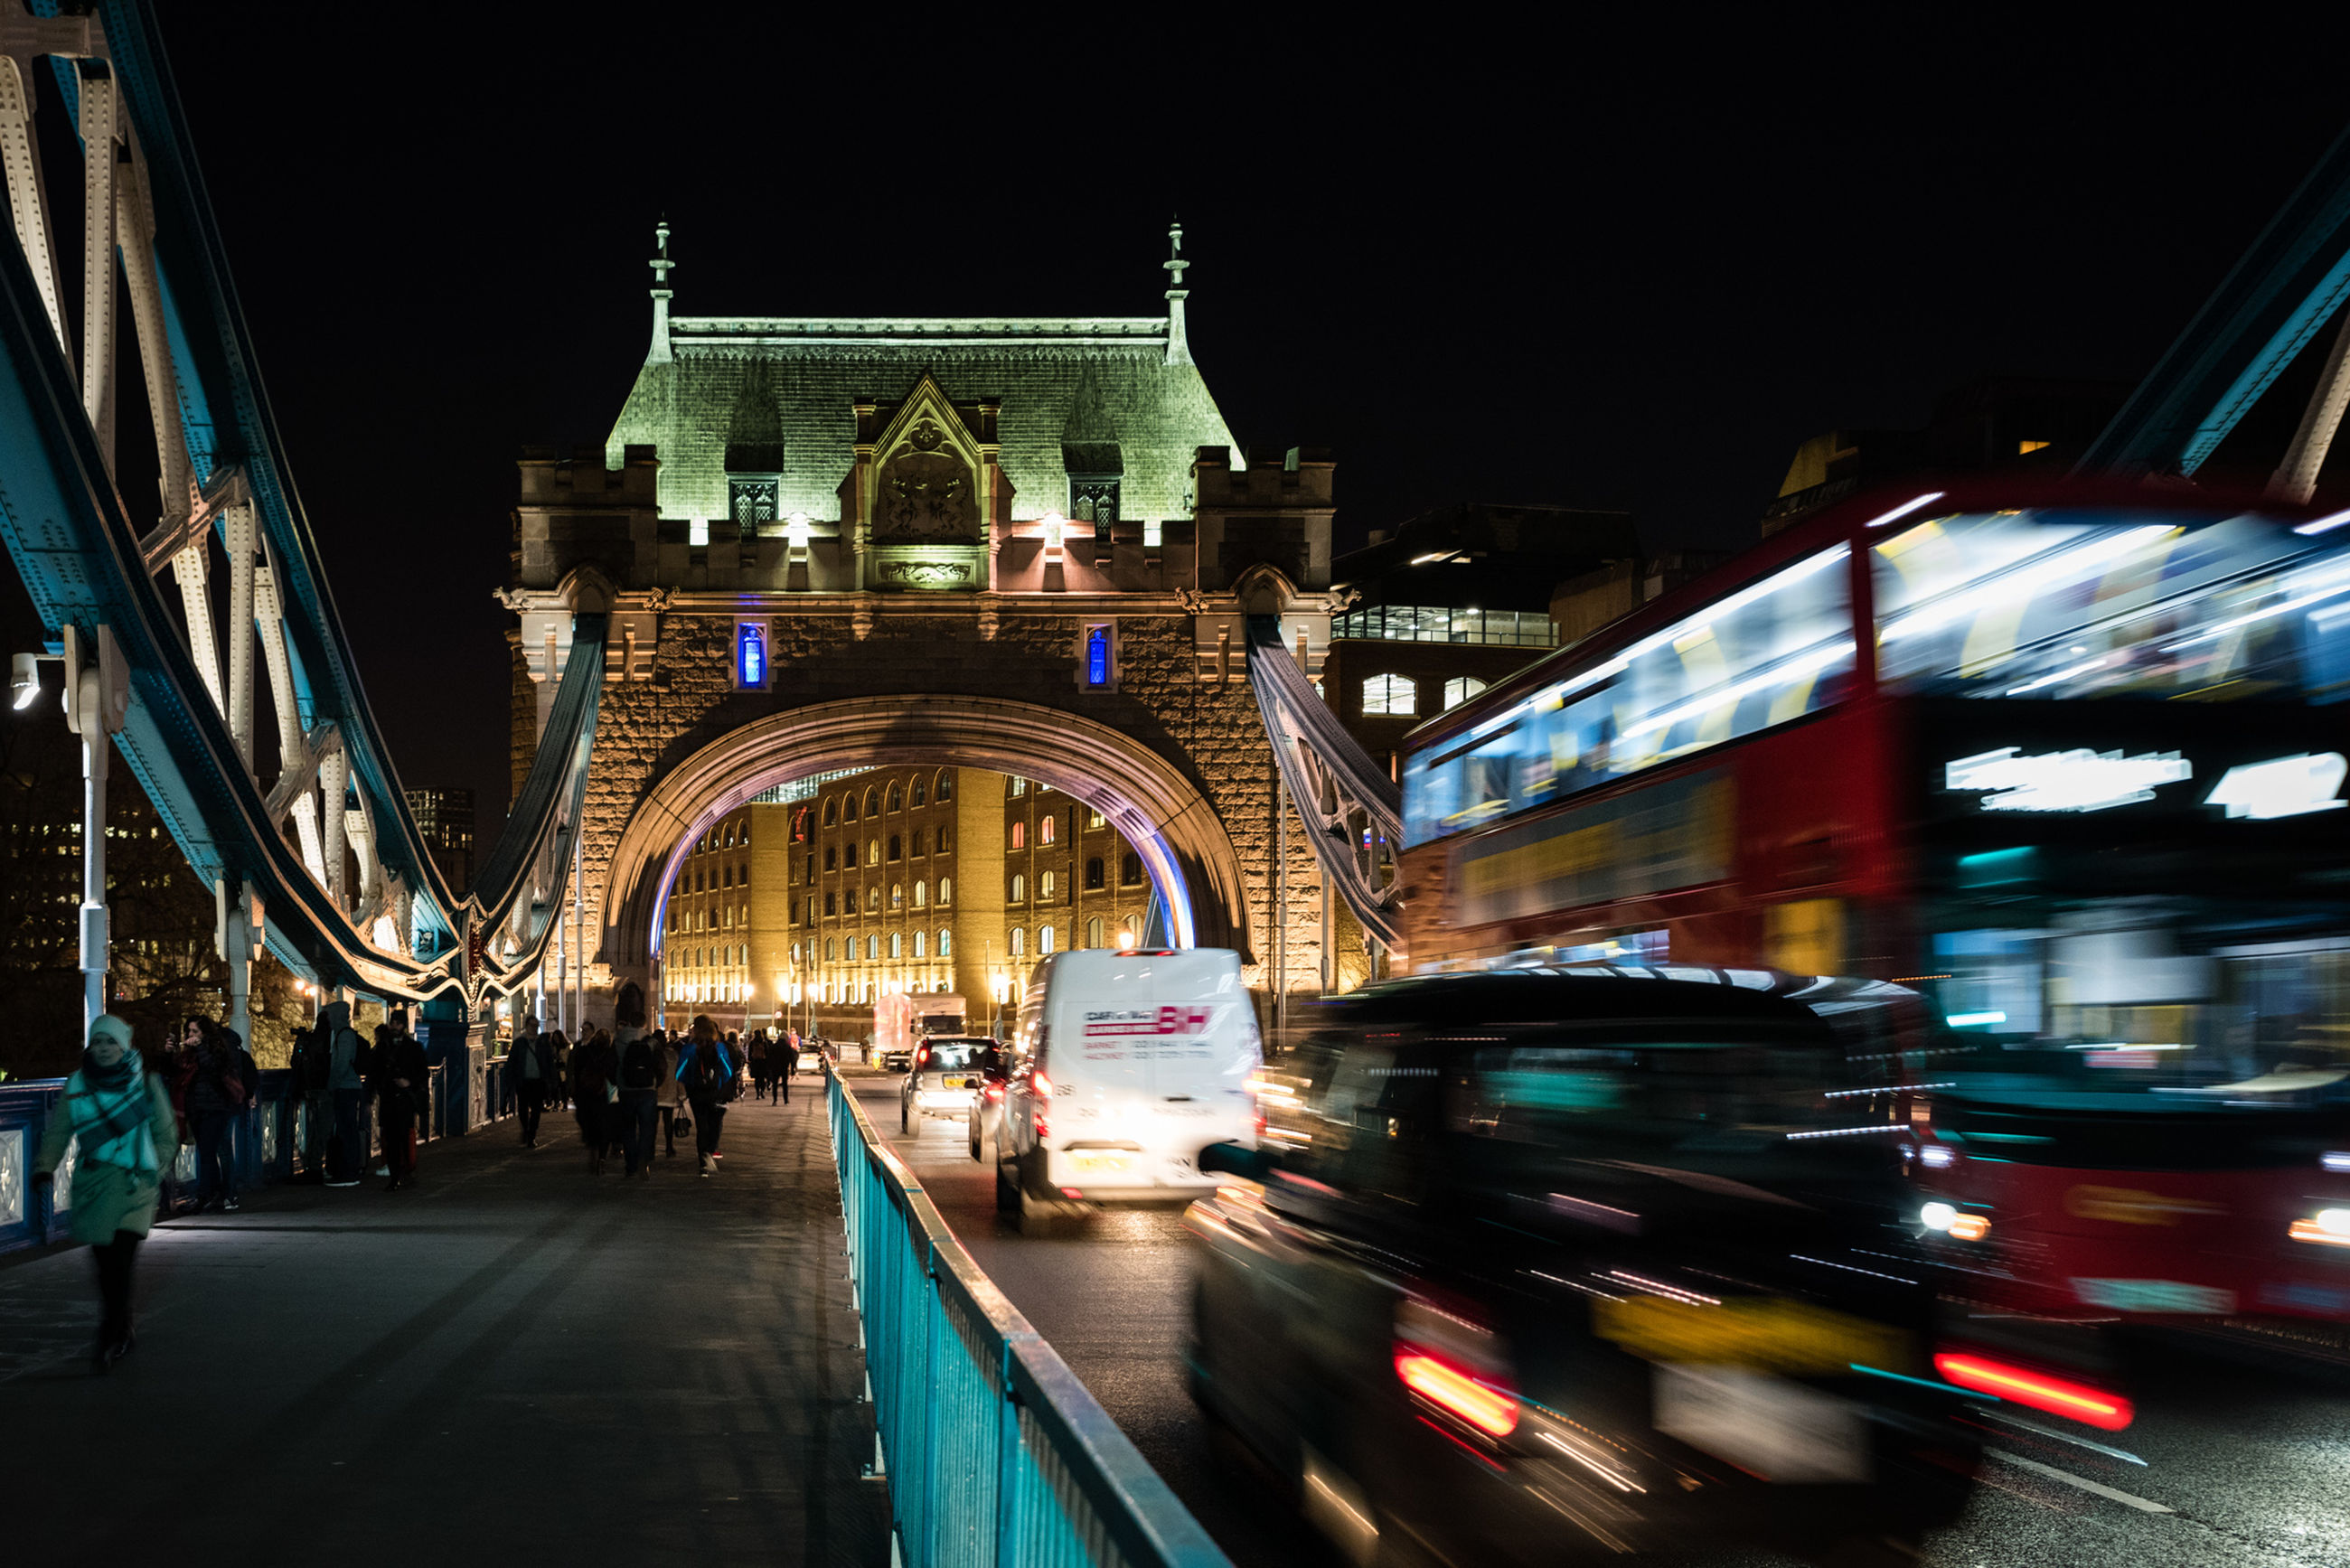 Bus and car on tower bridge in city at night